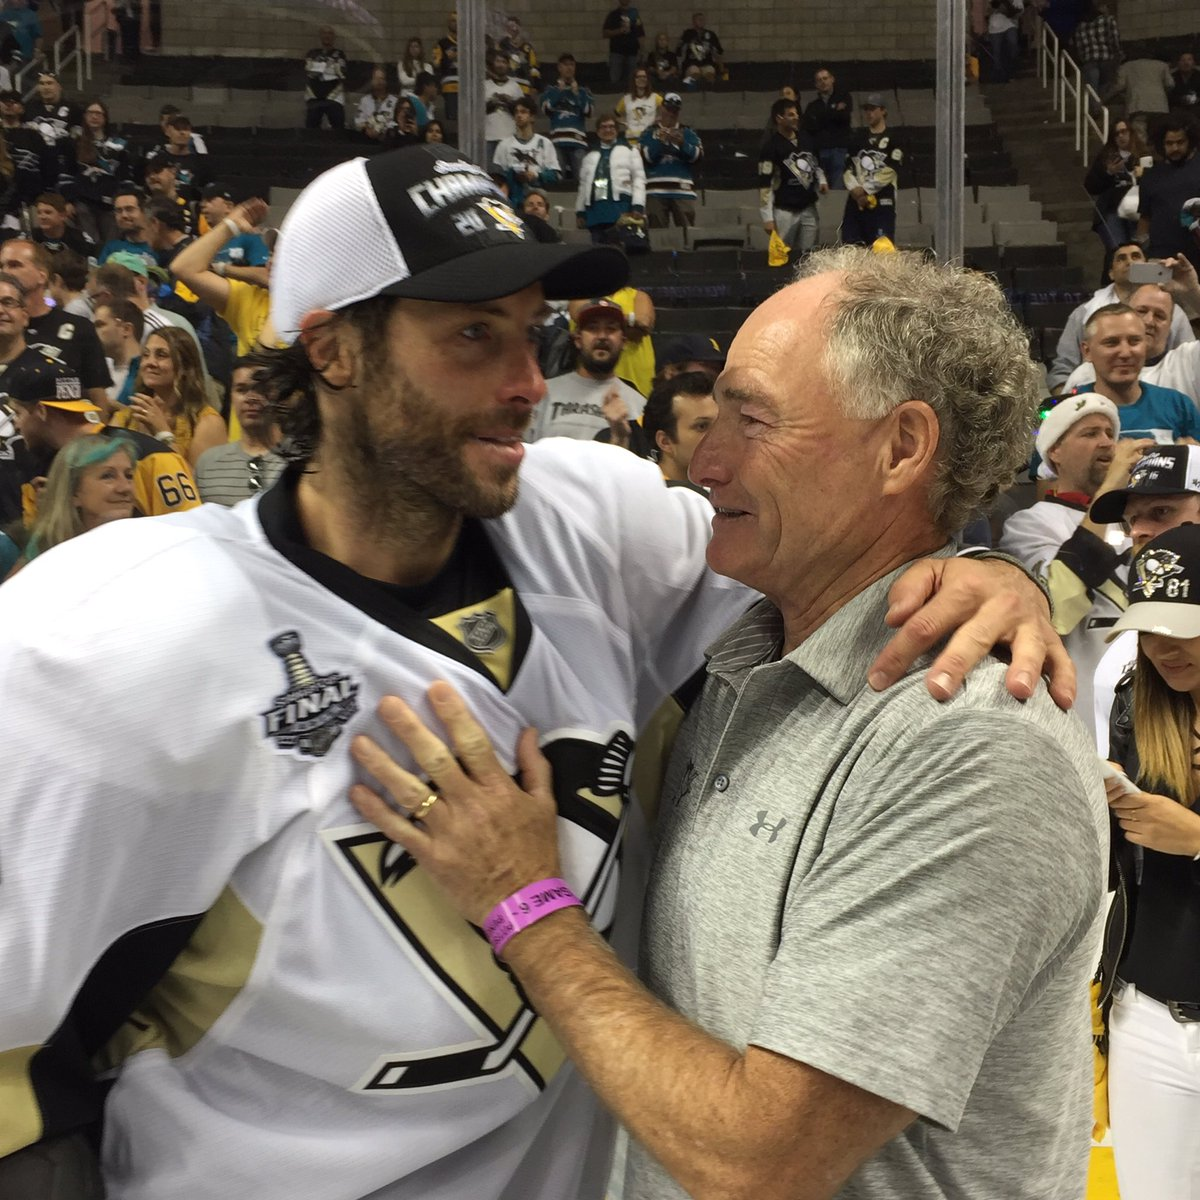 Emotional Matt Cullen greeting his dad and three sons https://t.co/J3UiQP0aSd